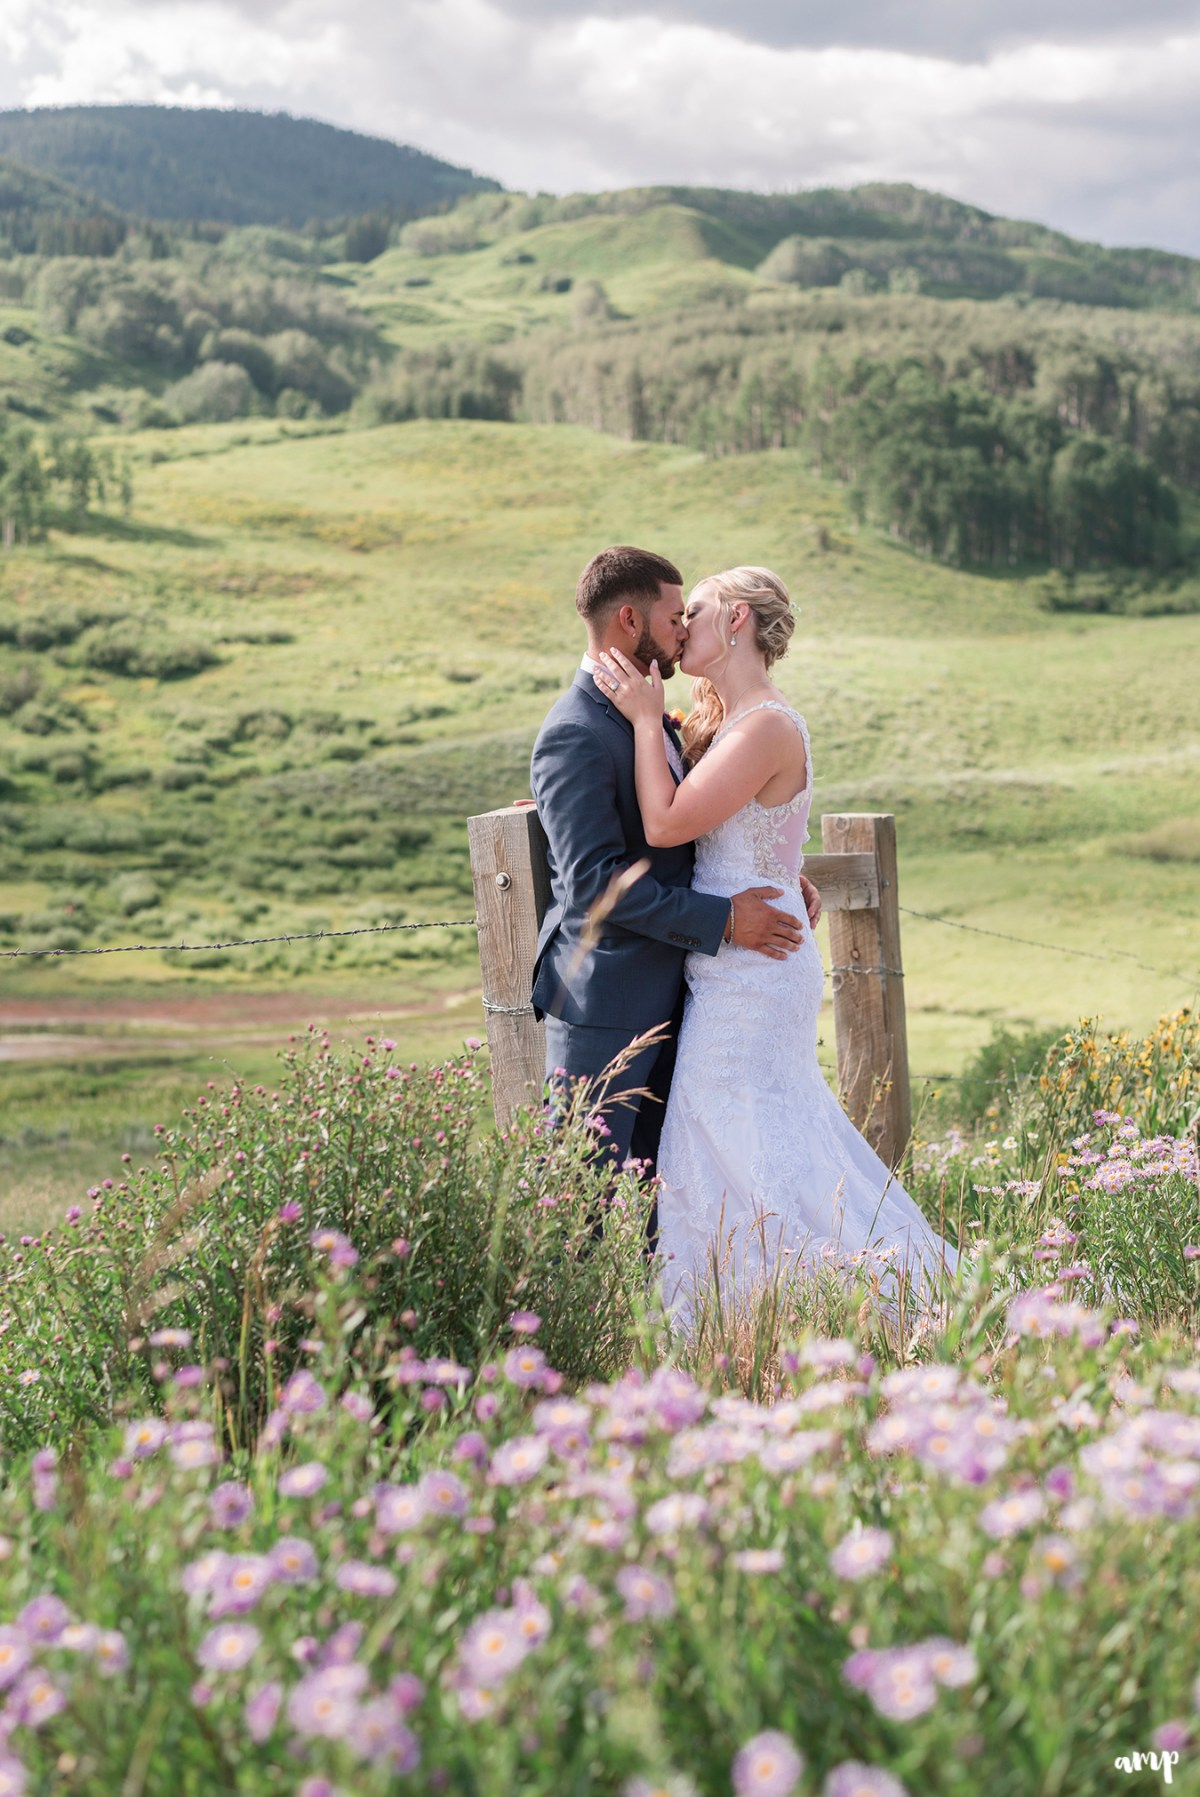 Bride and groom sharing a kiss among the wildflowers with mountains in the distance